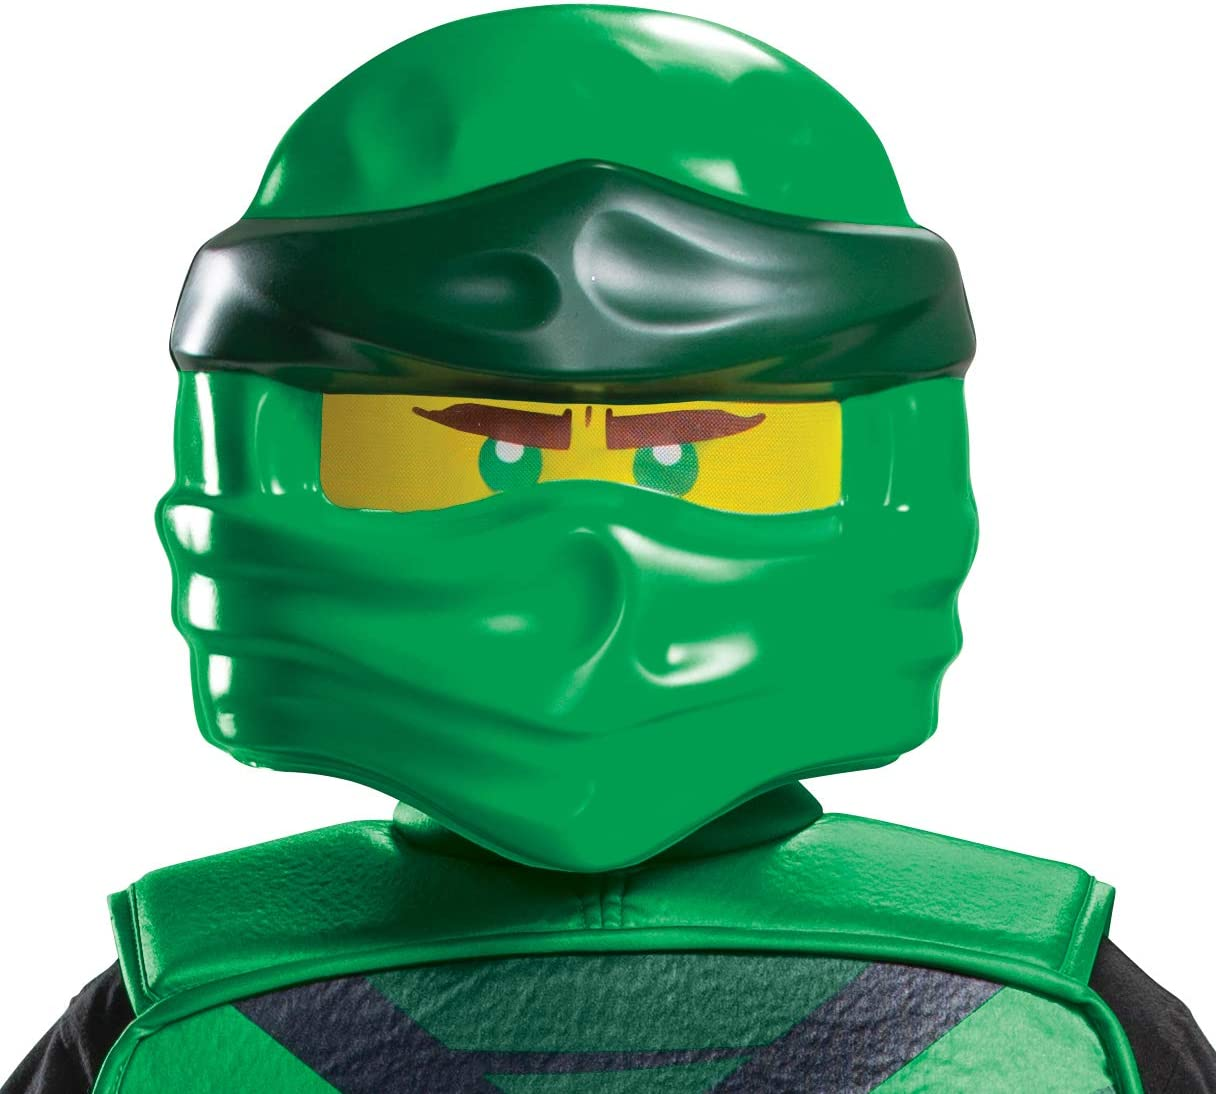 Lego Ninjago Legacy Themed Character Costume Face-mask Kids Size Green Lloyd Ninjago Mask